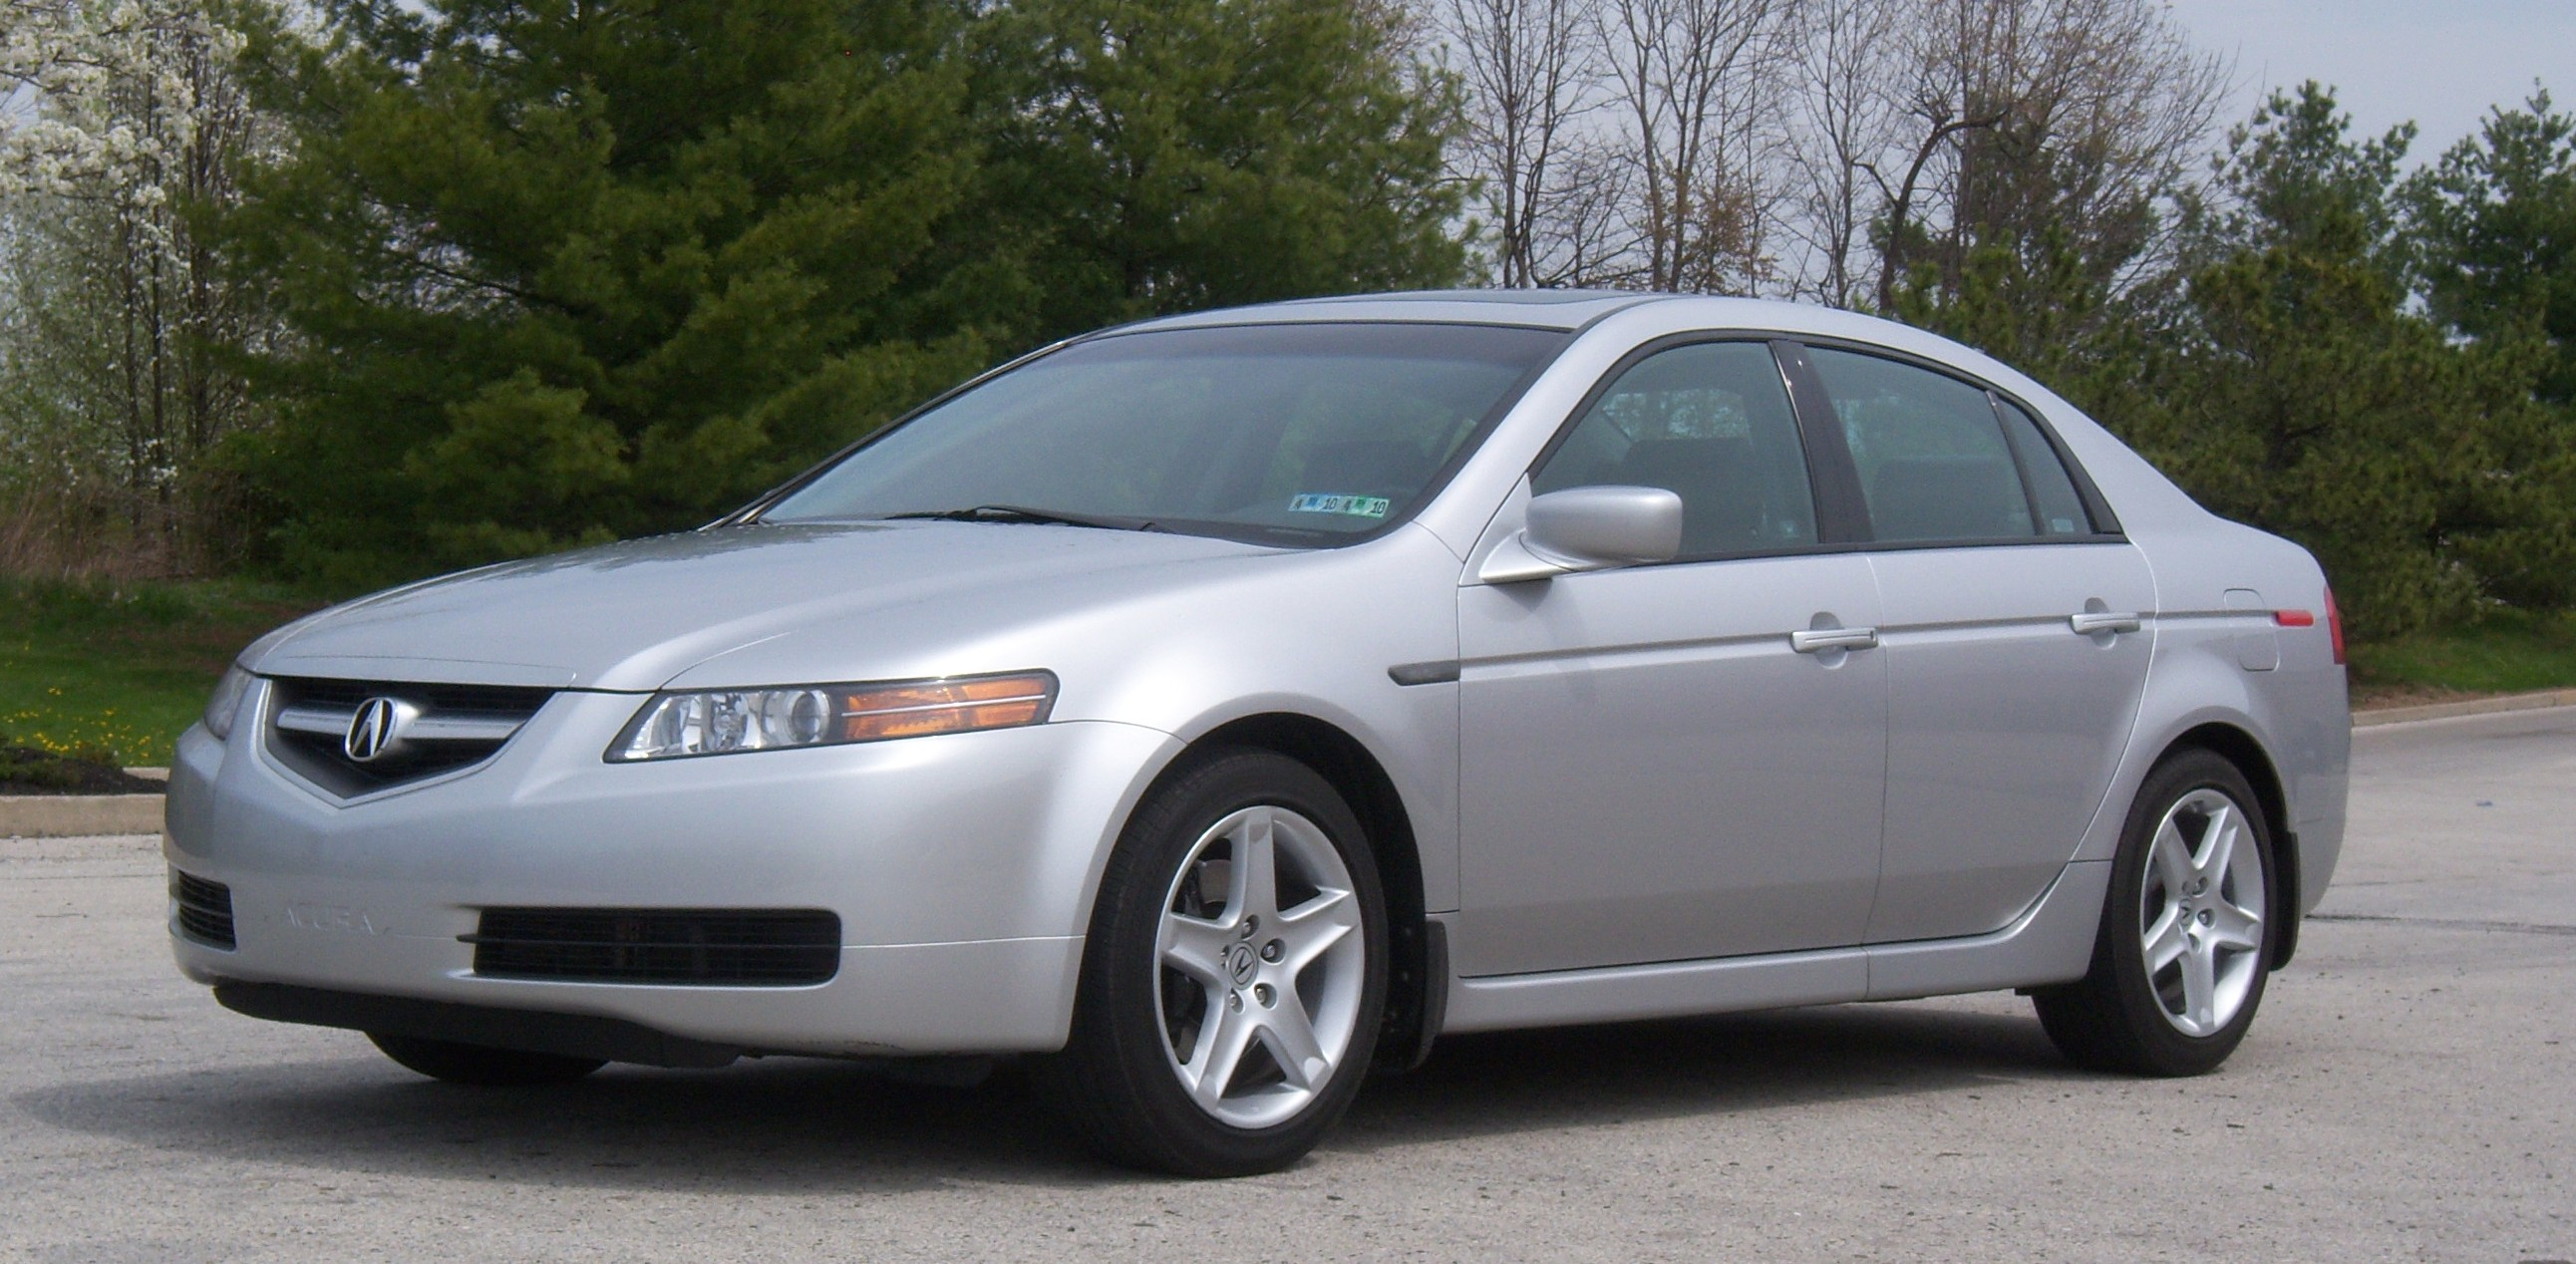 2008 Acura TL - Information and photos - MOMENTcar